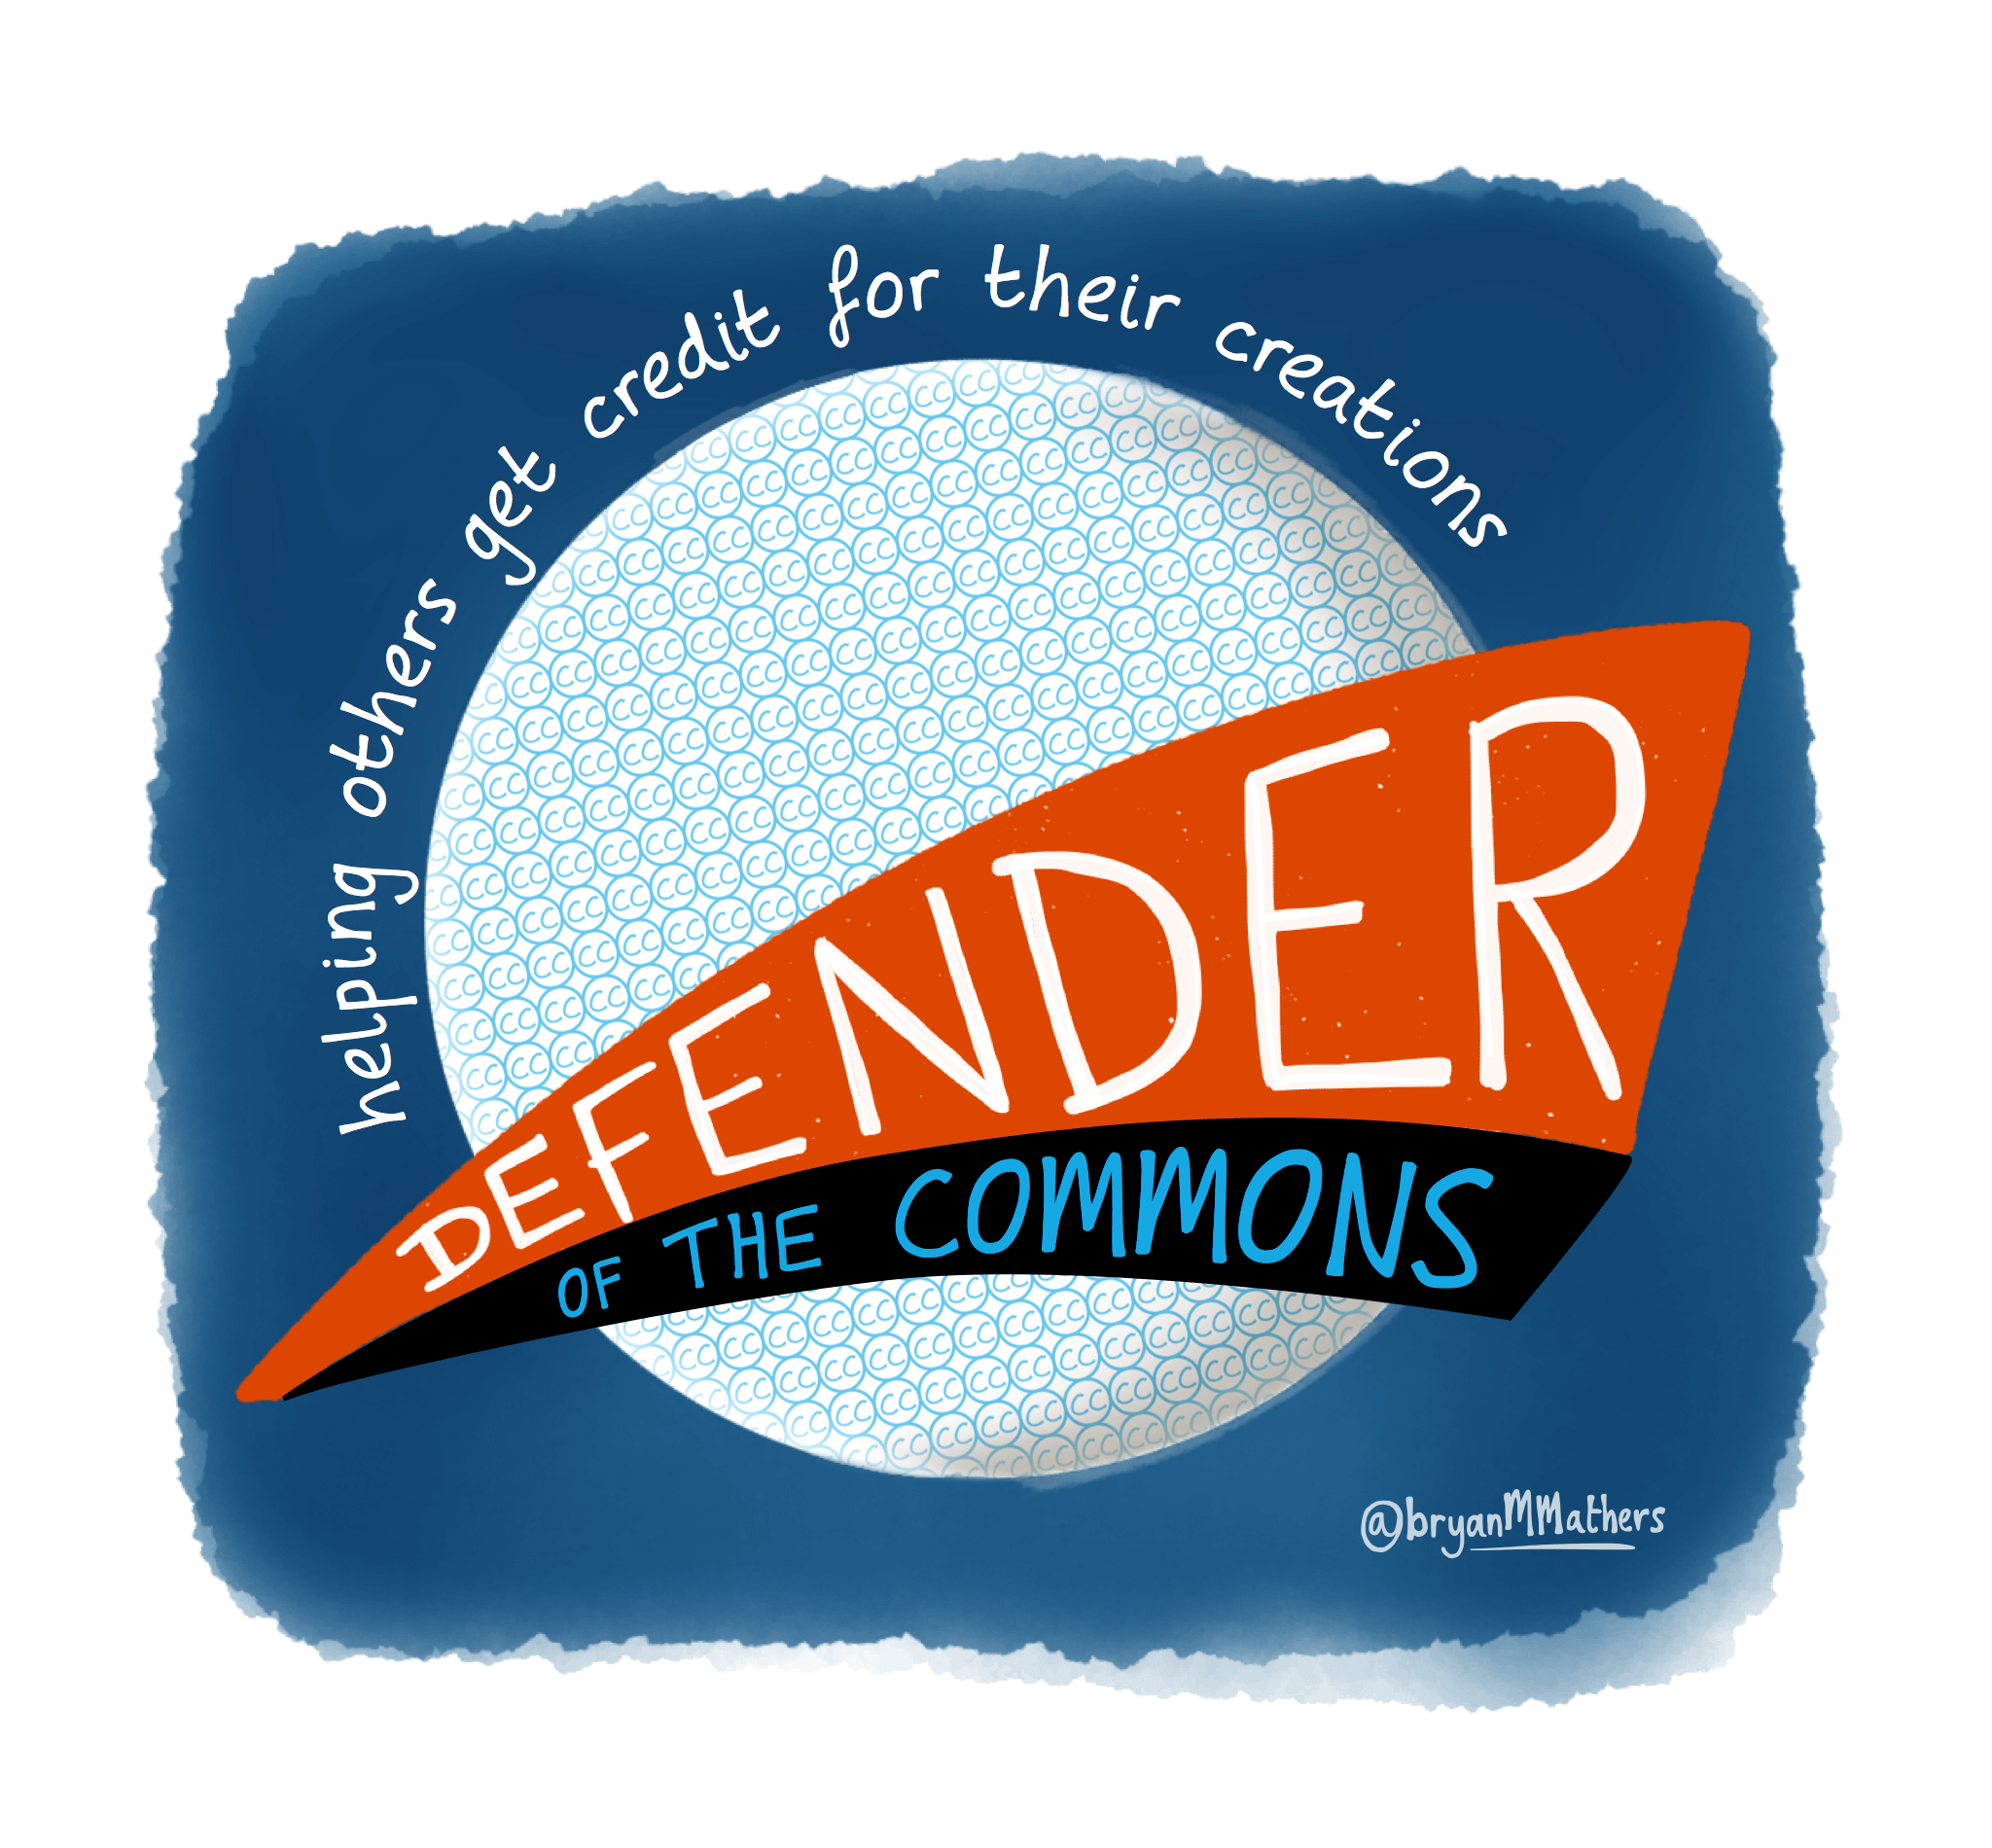 Defender of the Commons…